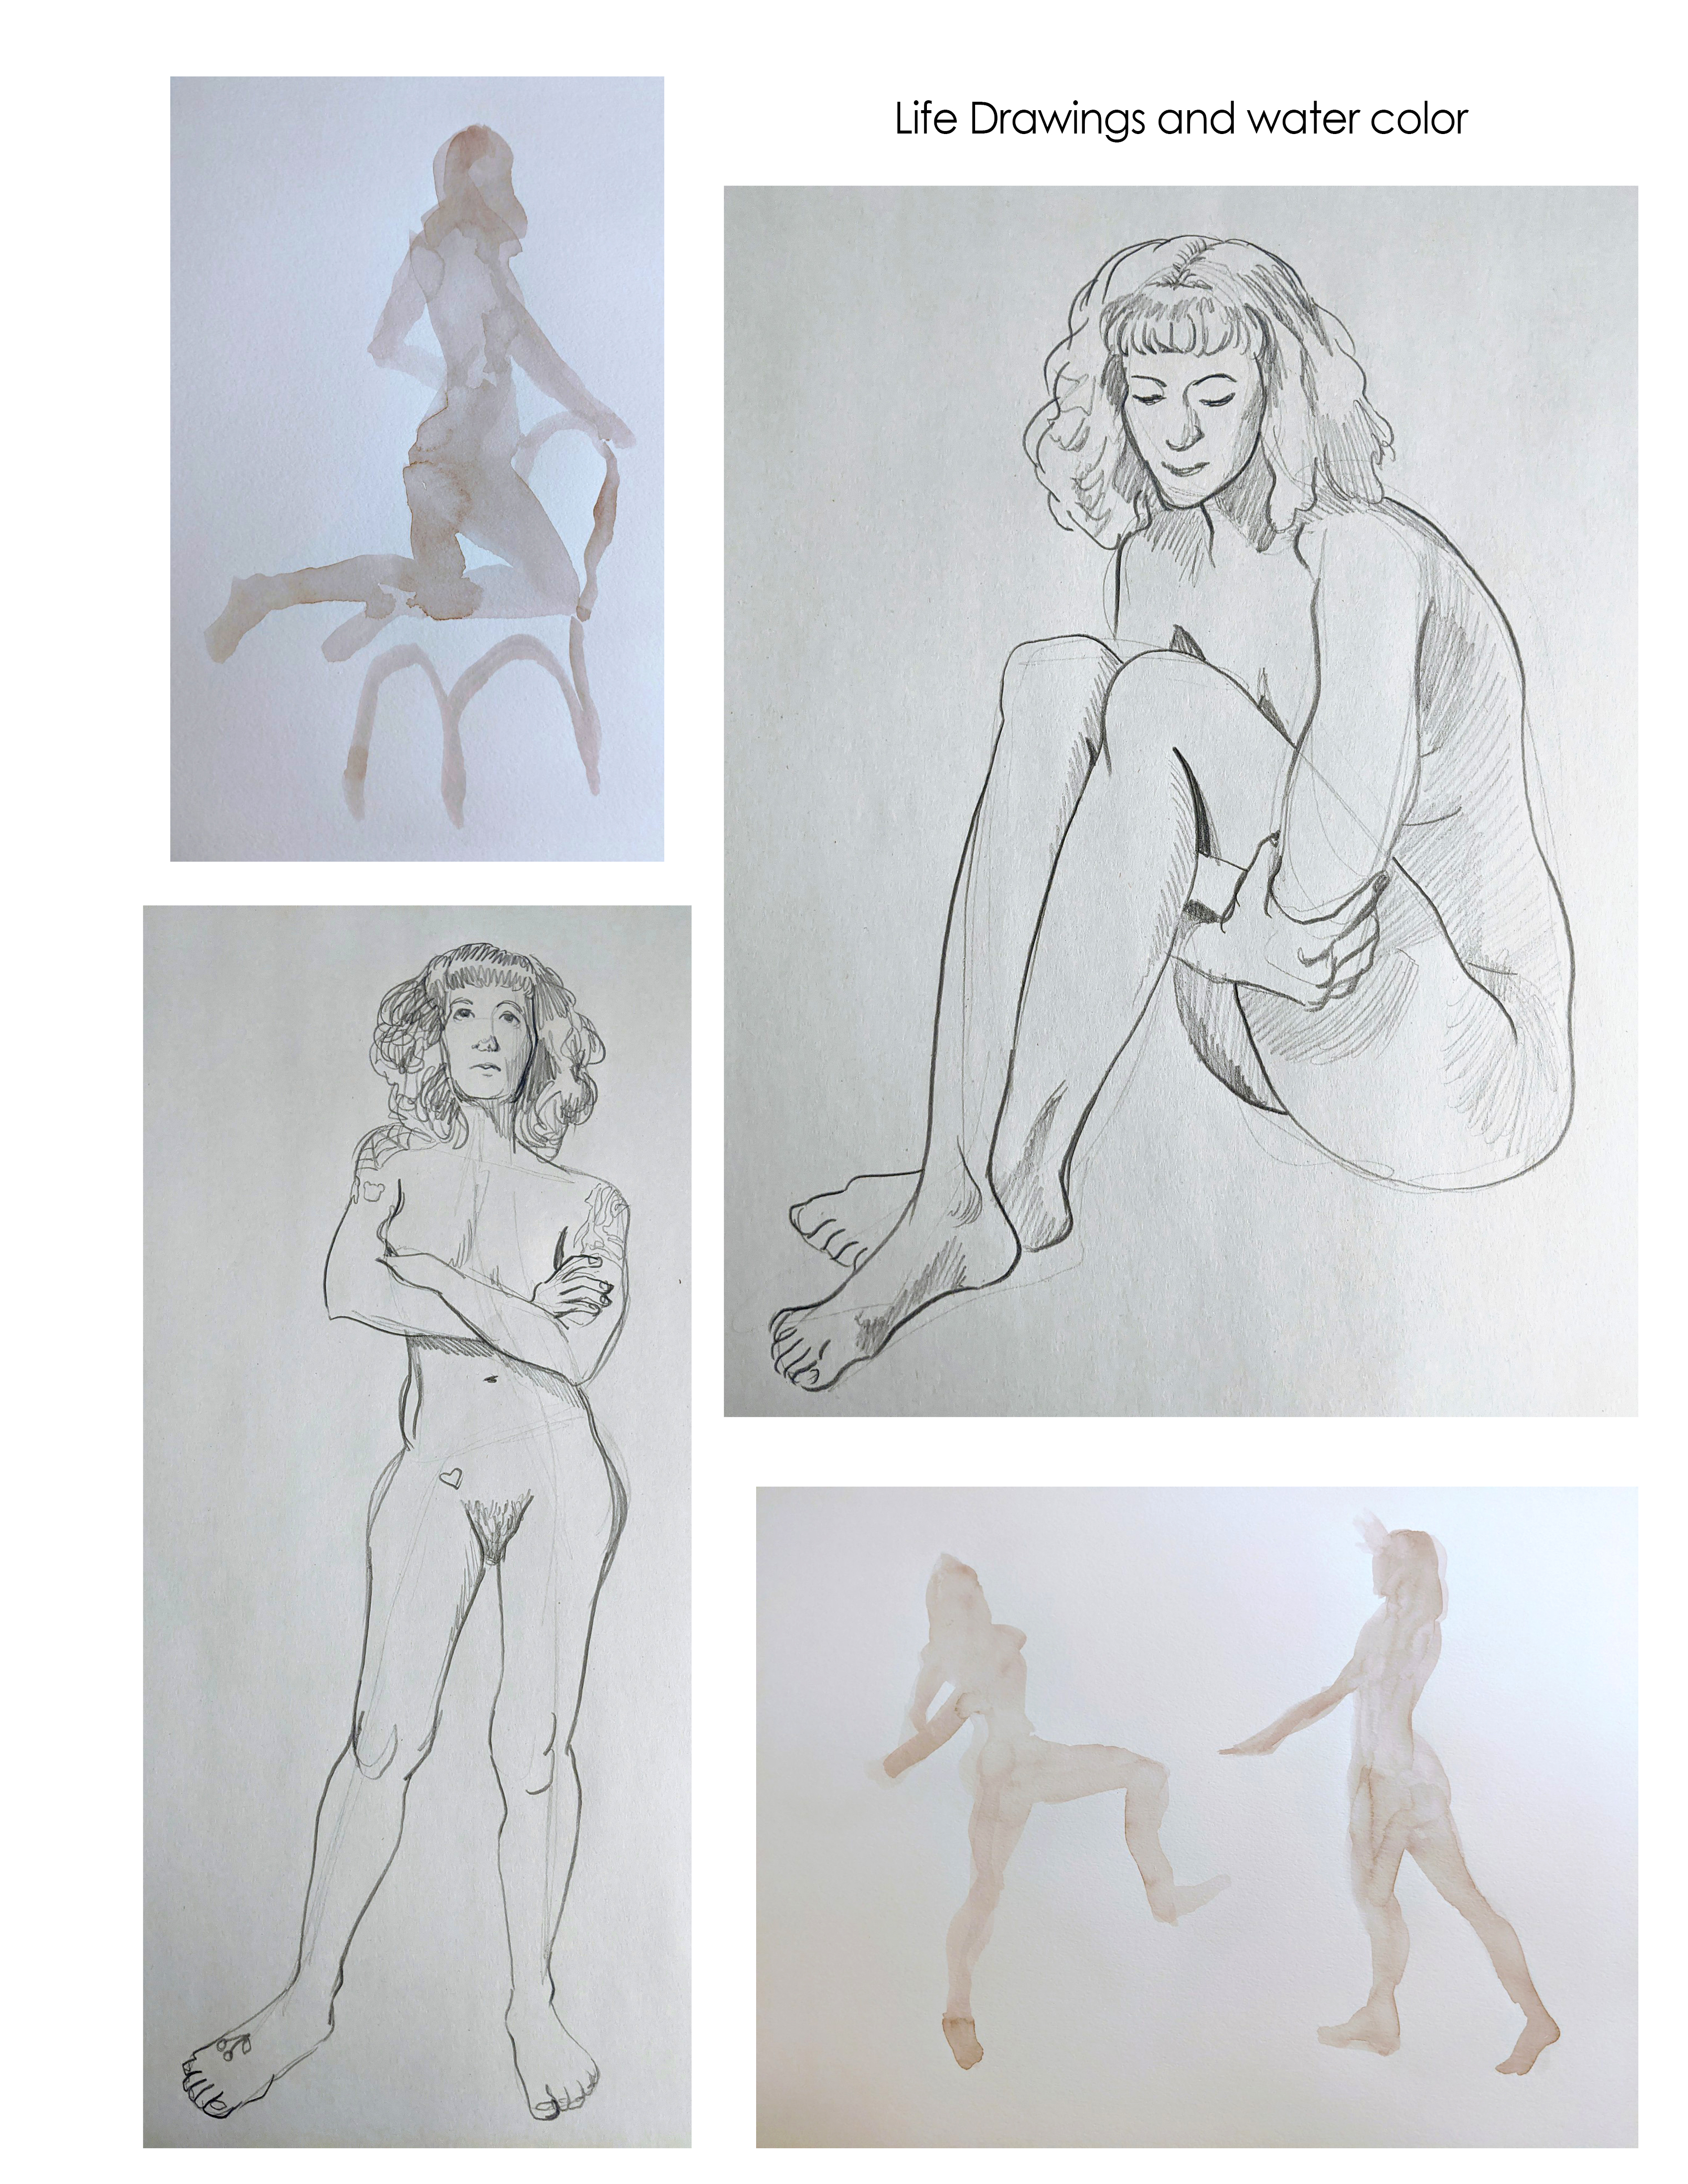 Lifedrawing_andcolor